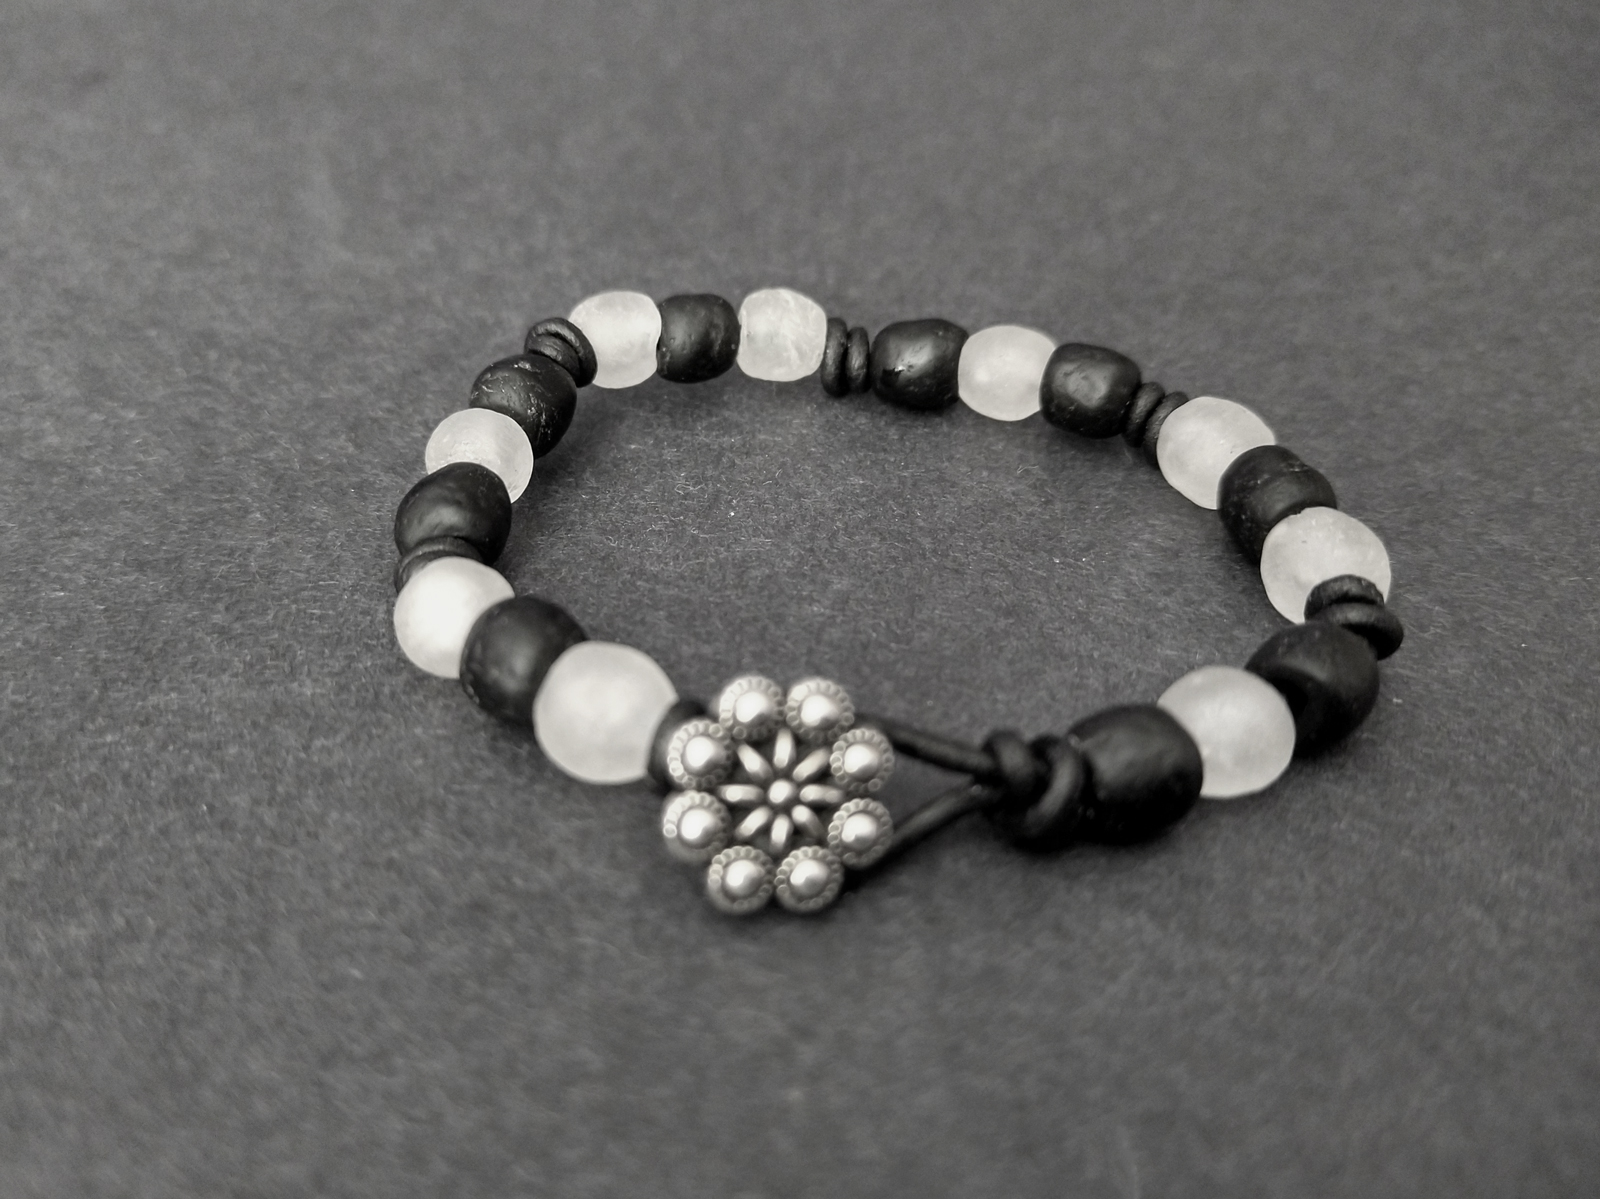 Knotted-recycled-glass-bracelet-with-black-leather-cord-button-black-and-white-button-view